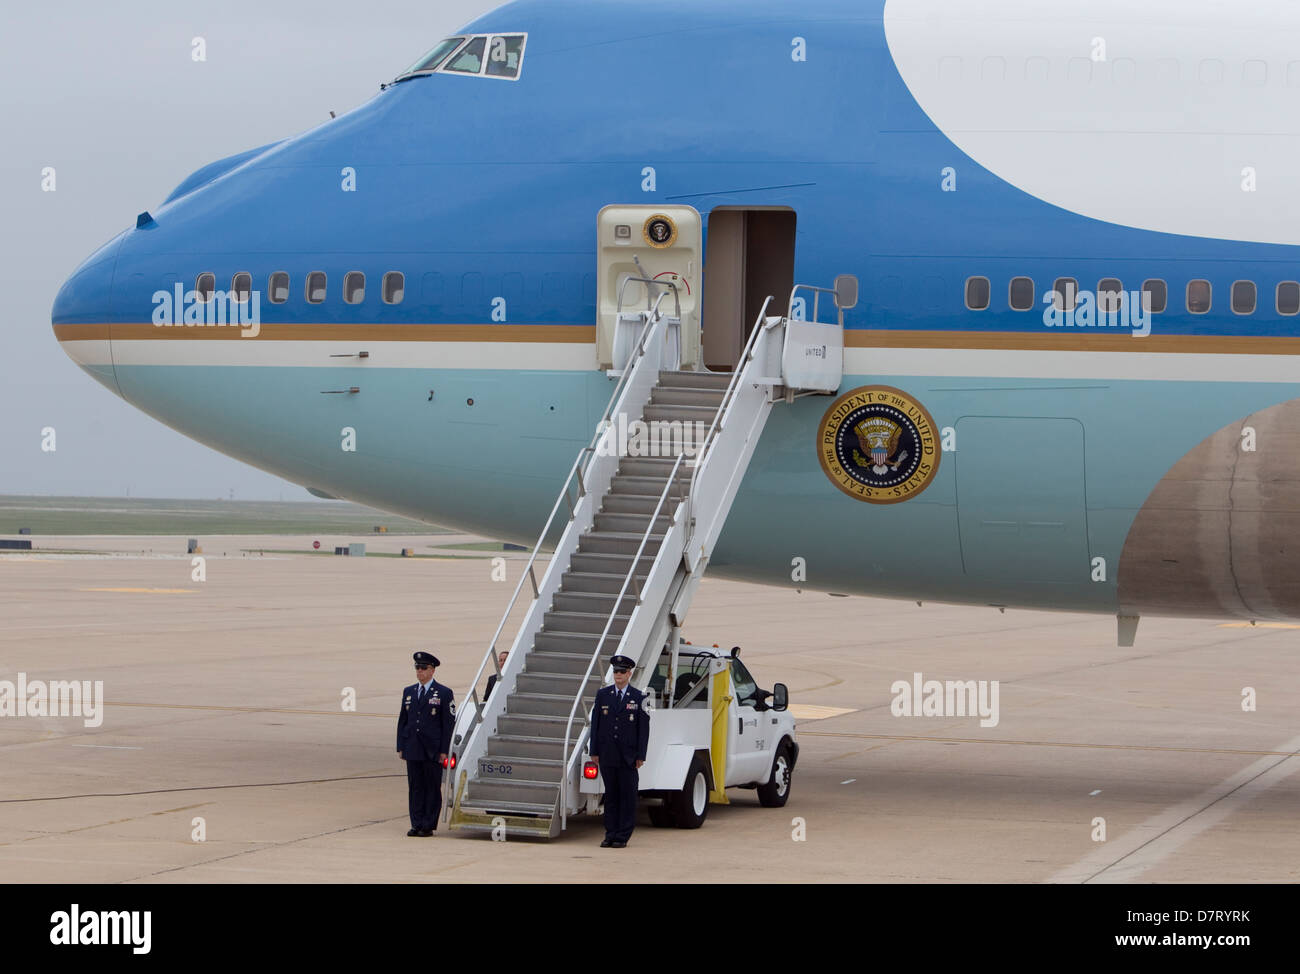 Air Force One, the official aircraft of the President of the United States, in Austin, Texas in May for an official - Stock Image